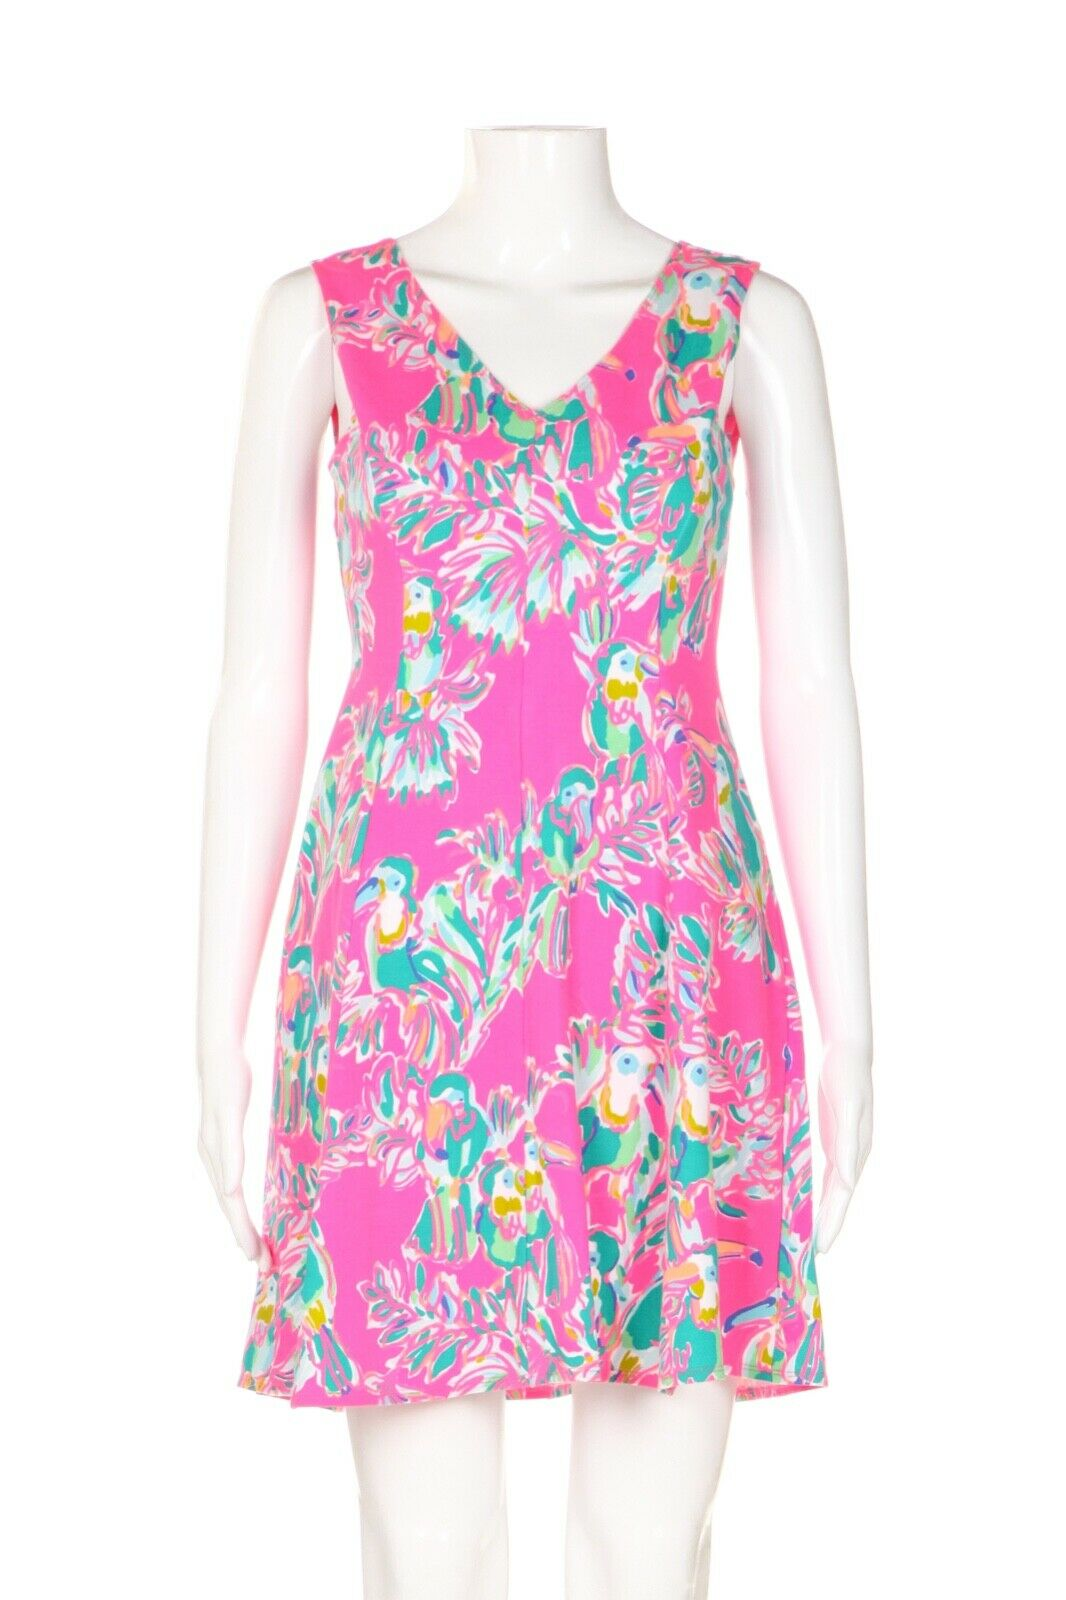 LILLY PULITZER Toucan Print Summer Dress Size XS